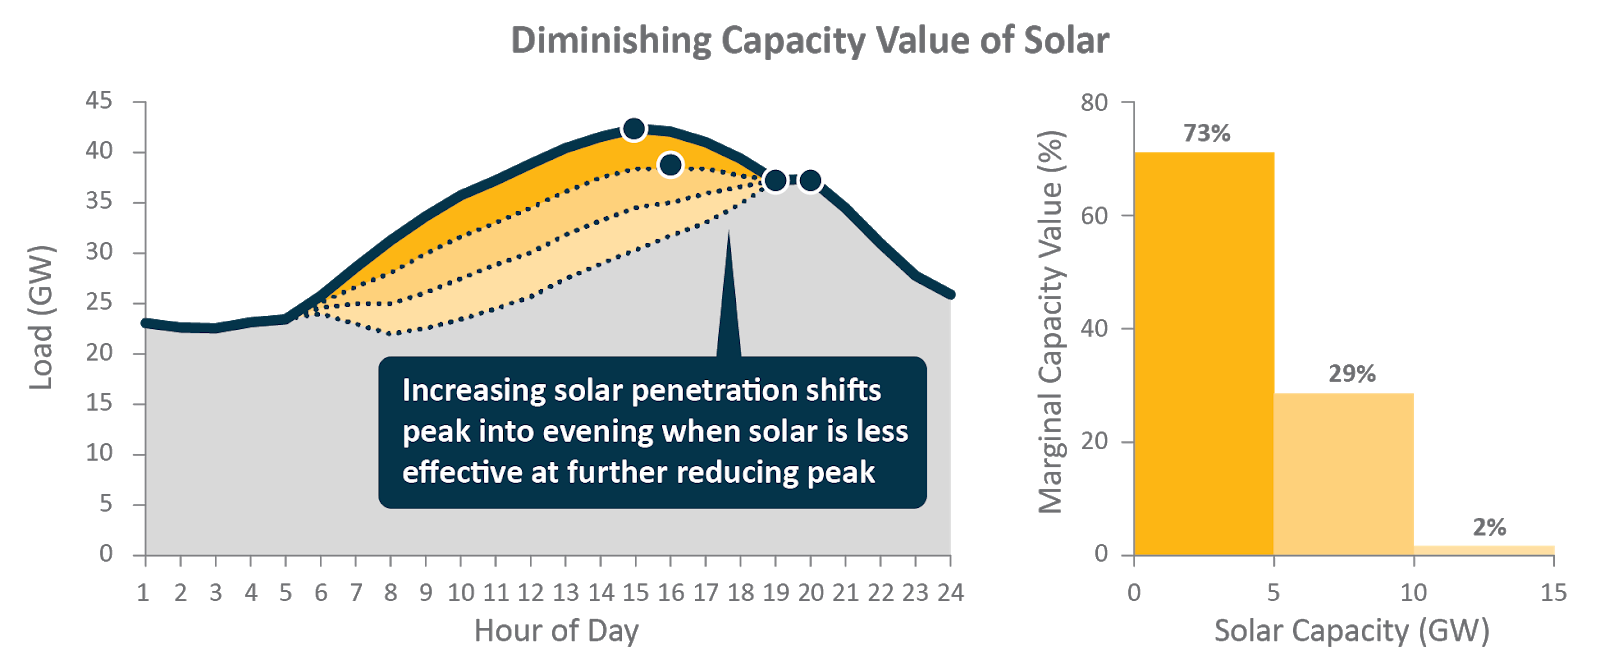 Diminishing Capacity Value of Solar